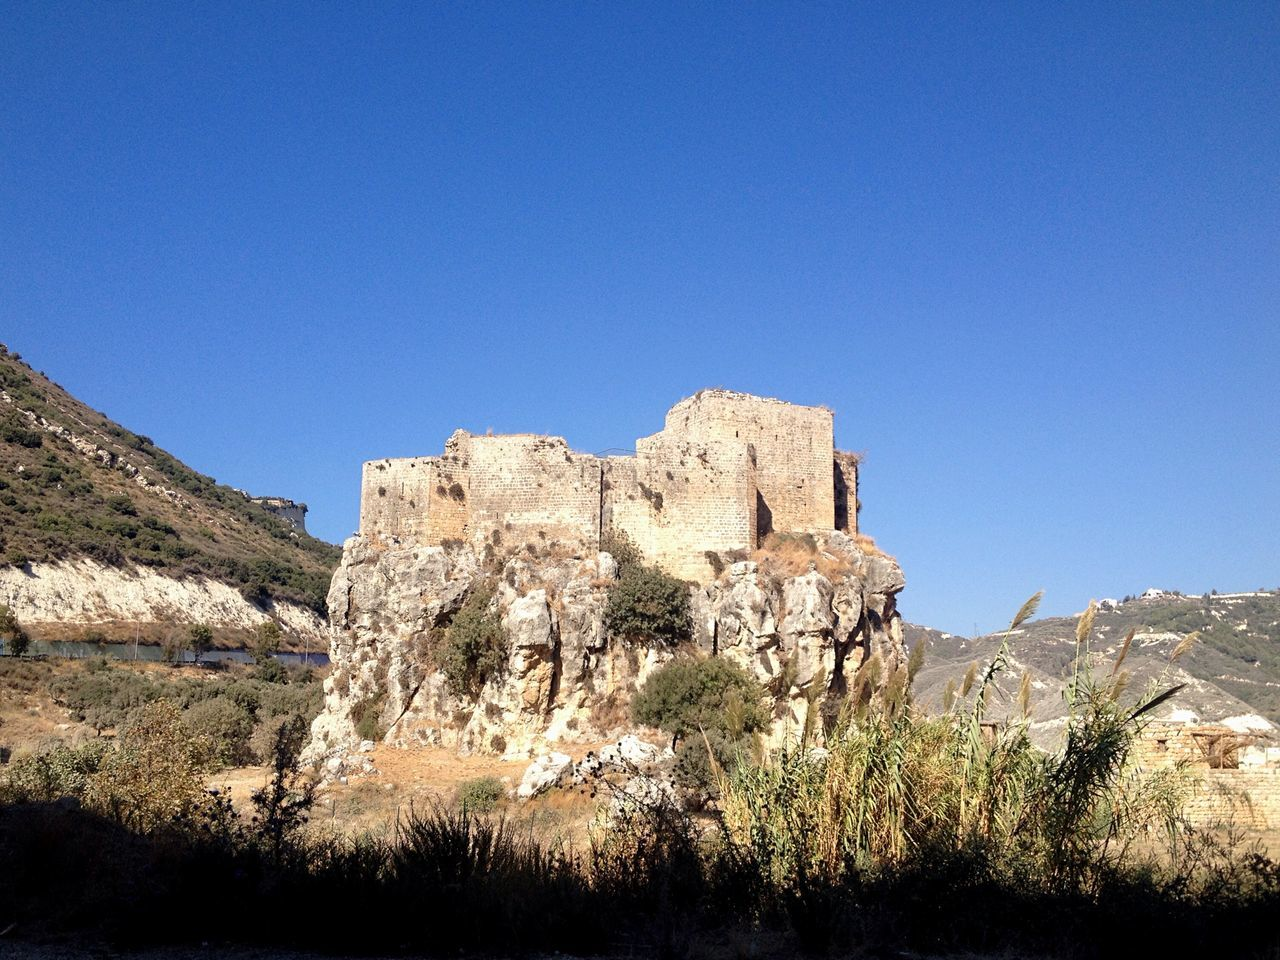 Lebanon Old Buildings Old Construction Fort Castle North Lebanon MsaylhaCastle East Mediterranean 16th Century